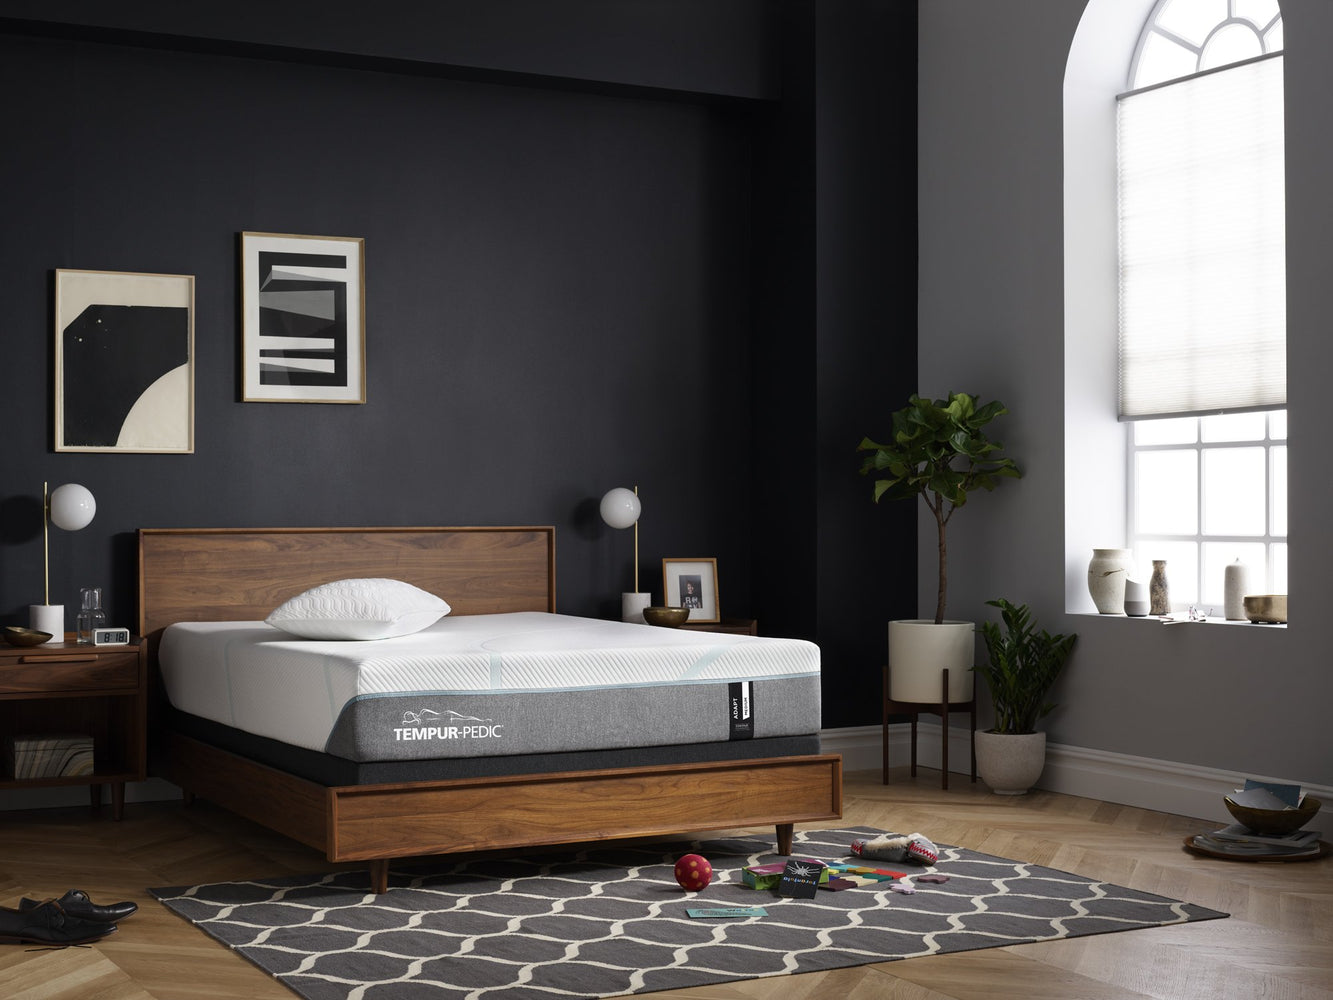 "TEMPUR-Adapt° 11"" Medium Mattress,ultimattress,Tempur-Pedic,Mattress"